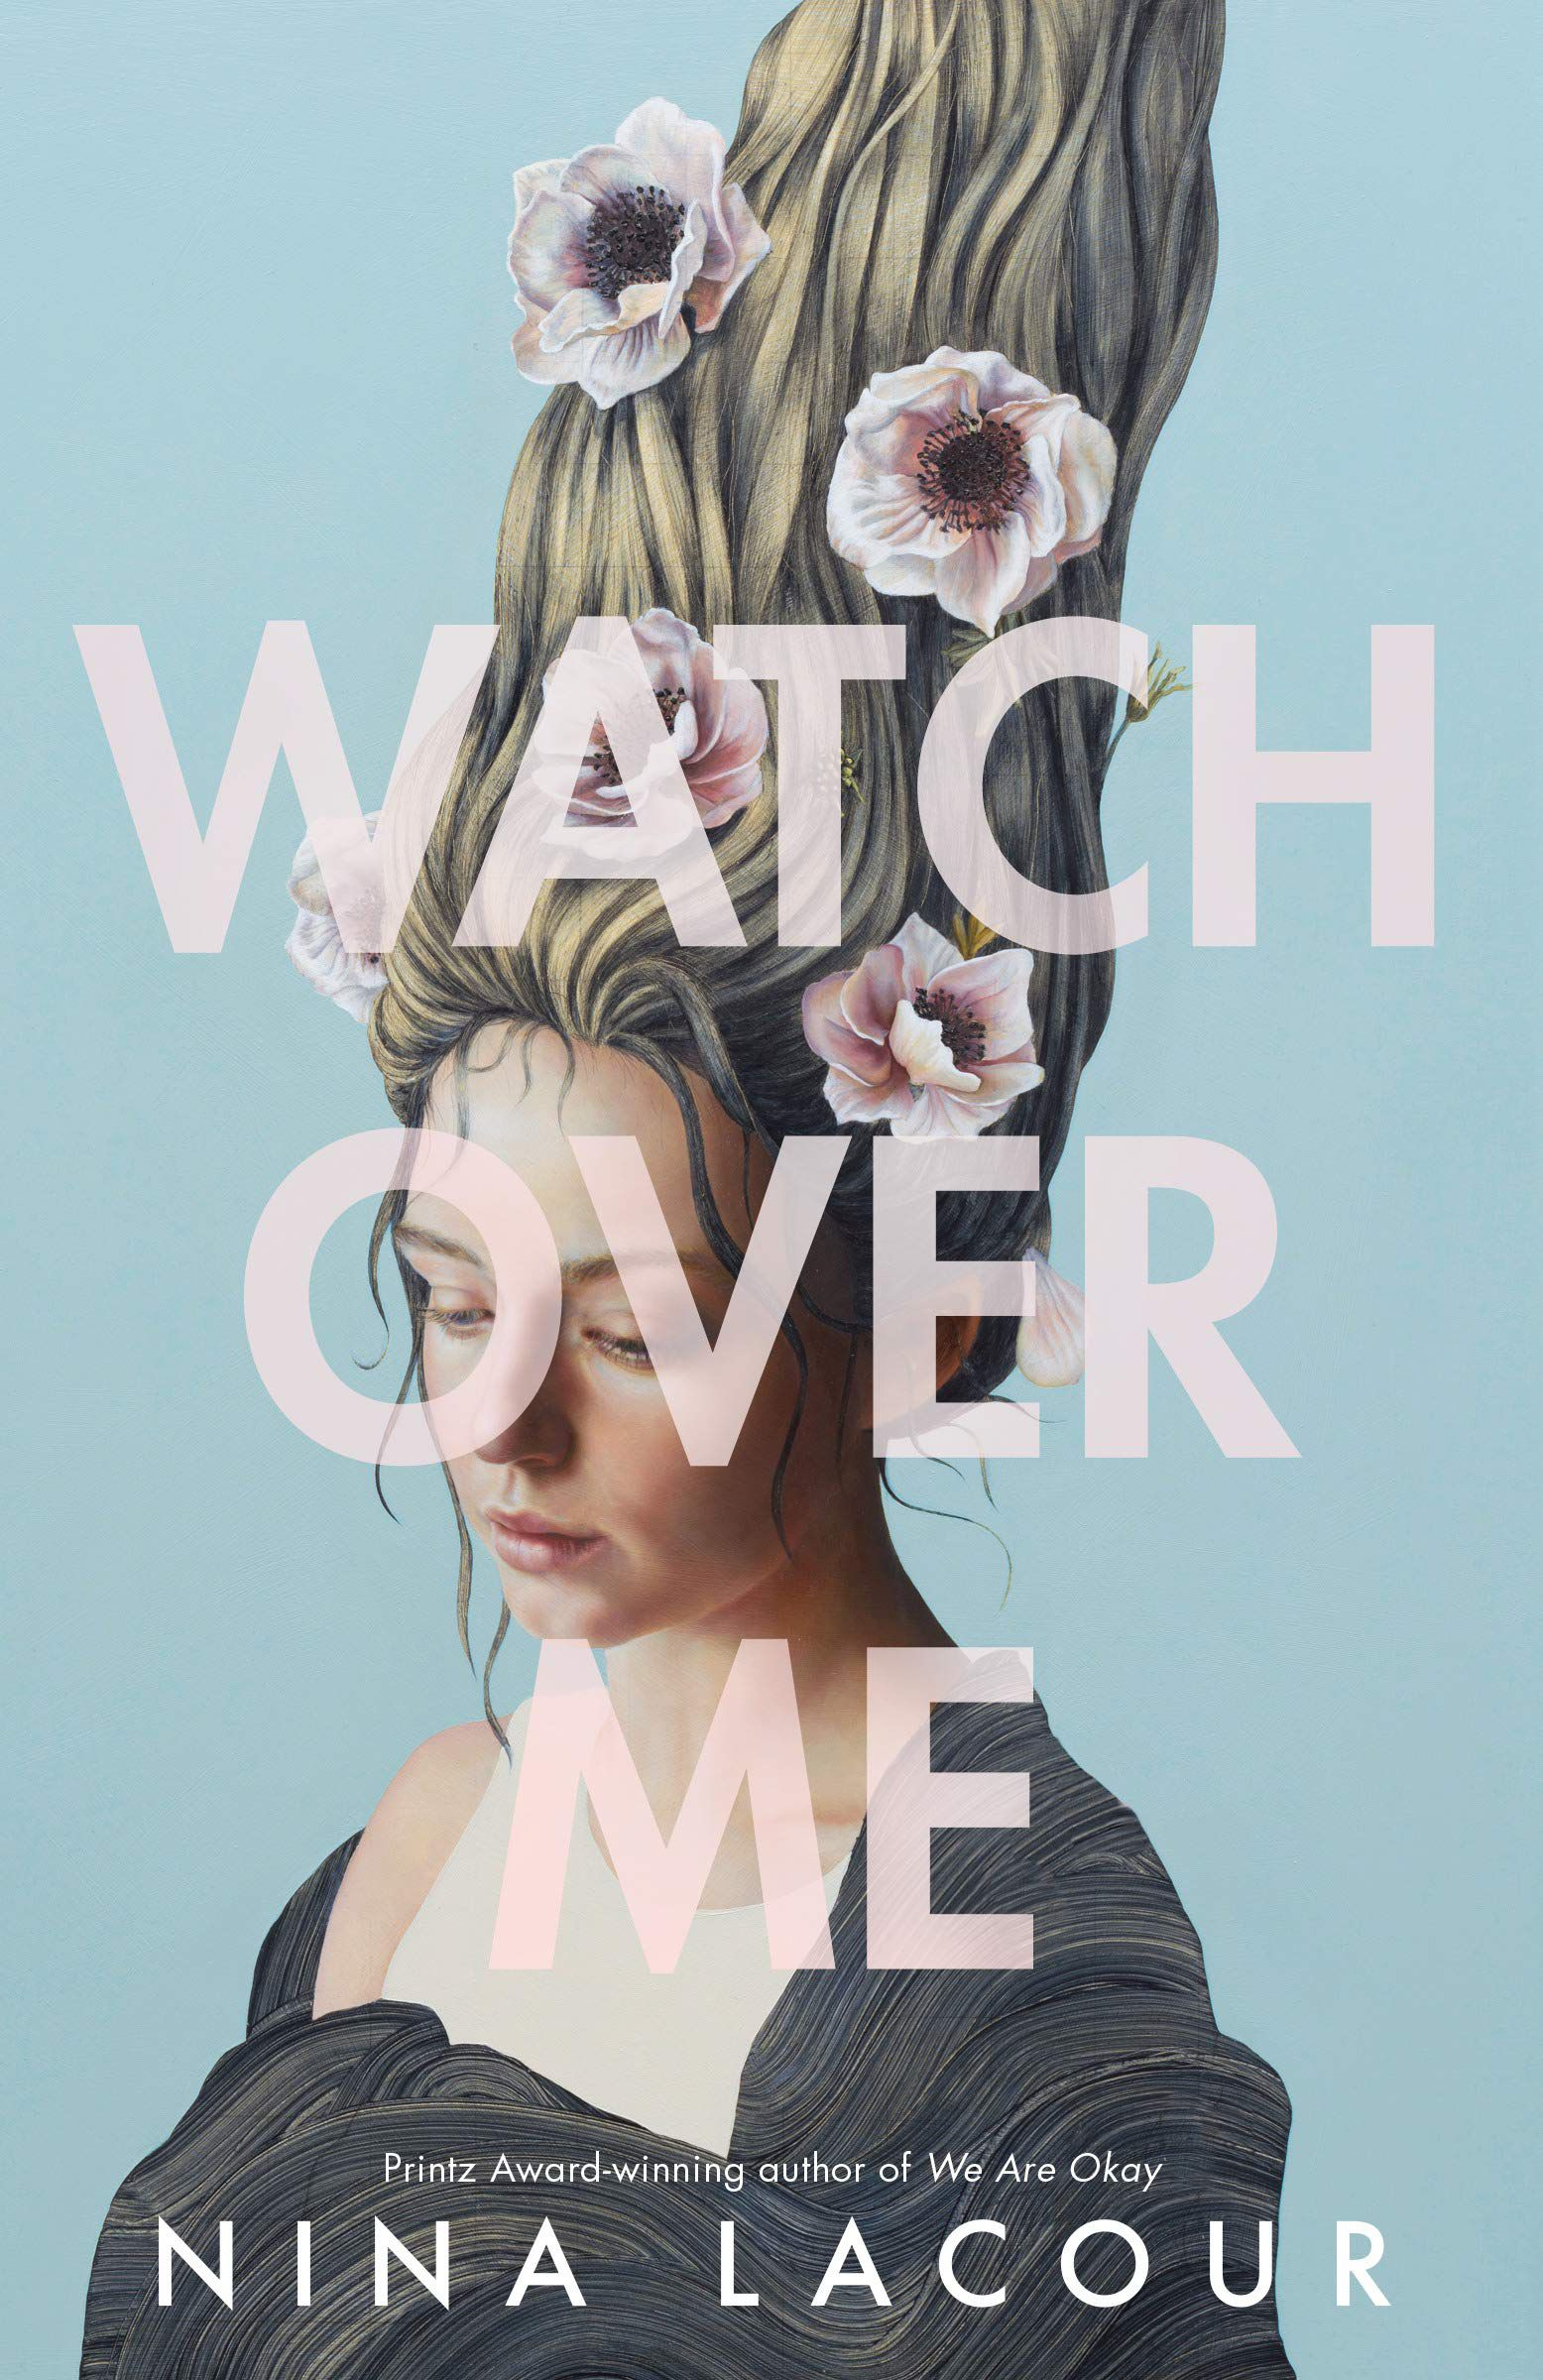 watch over me book cover.jpg.optimal